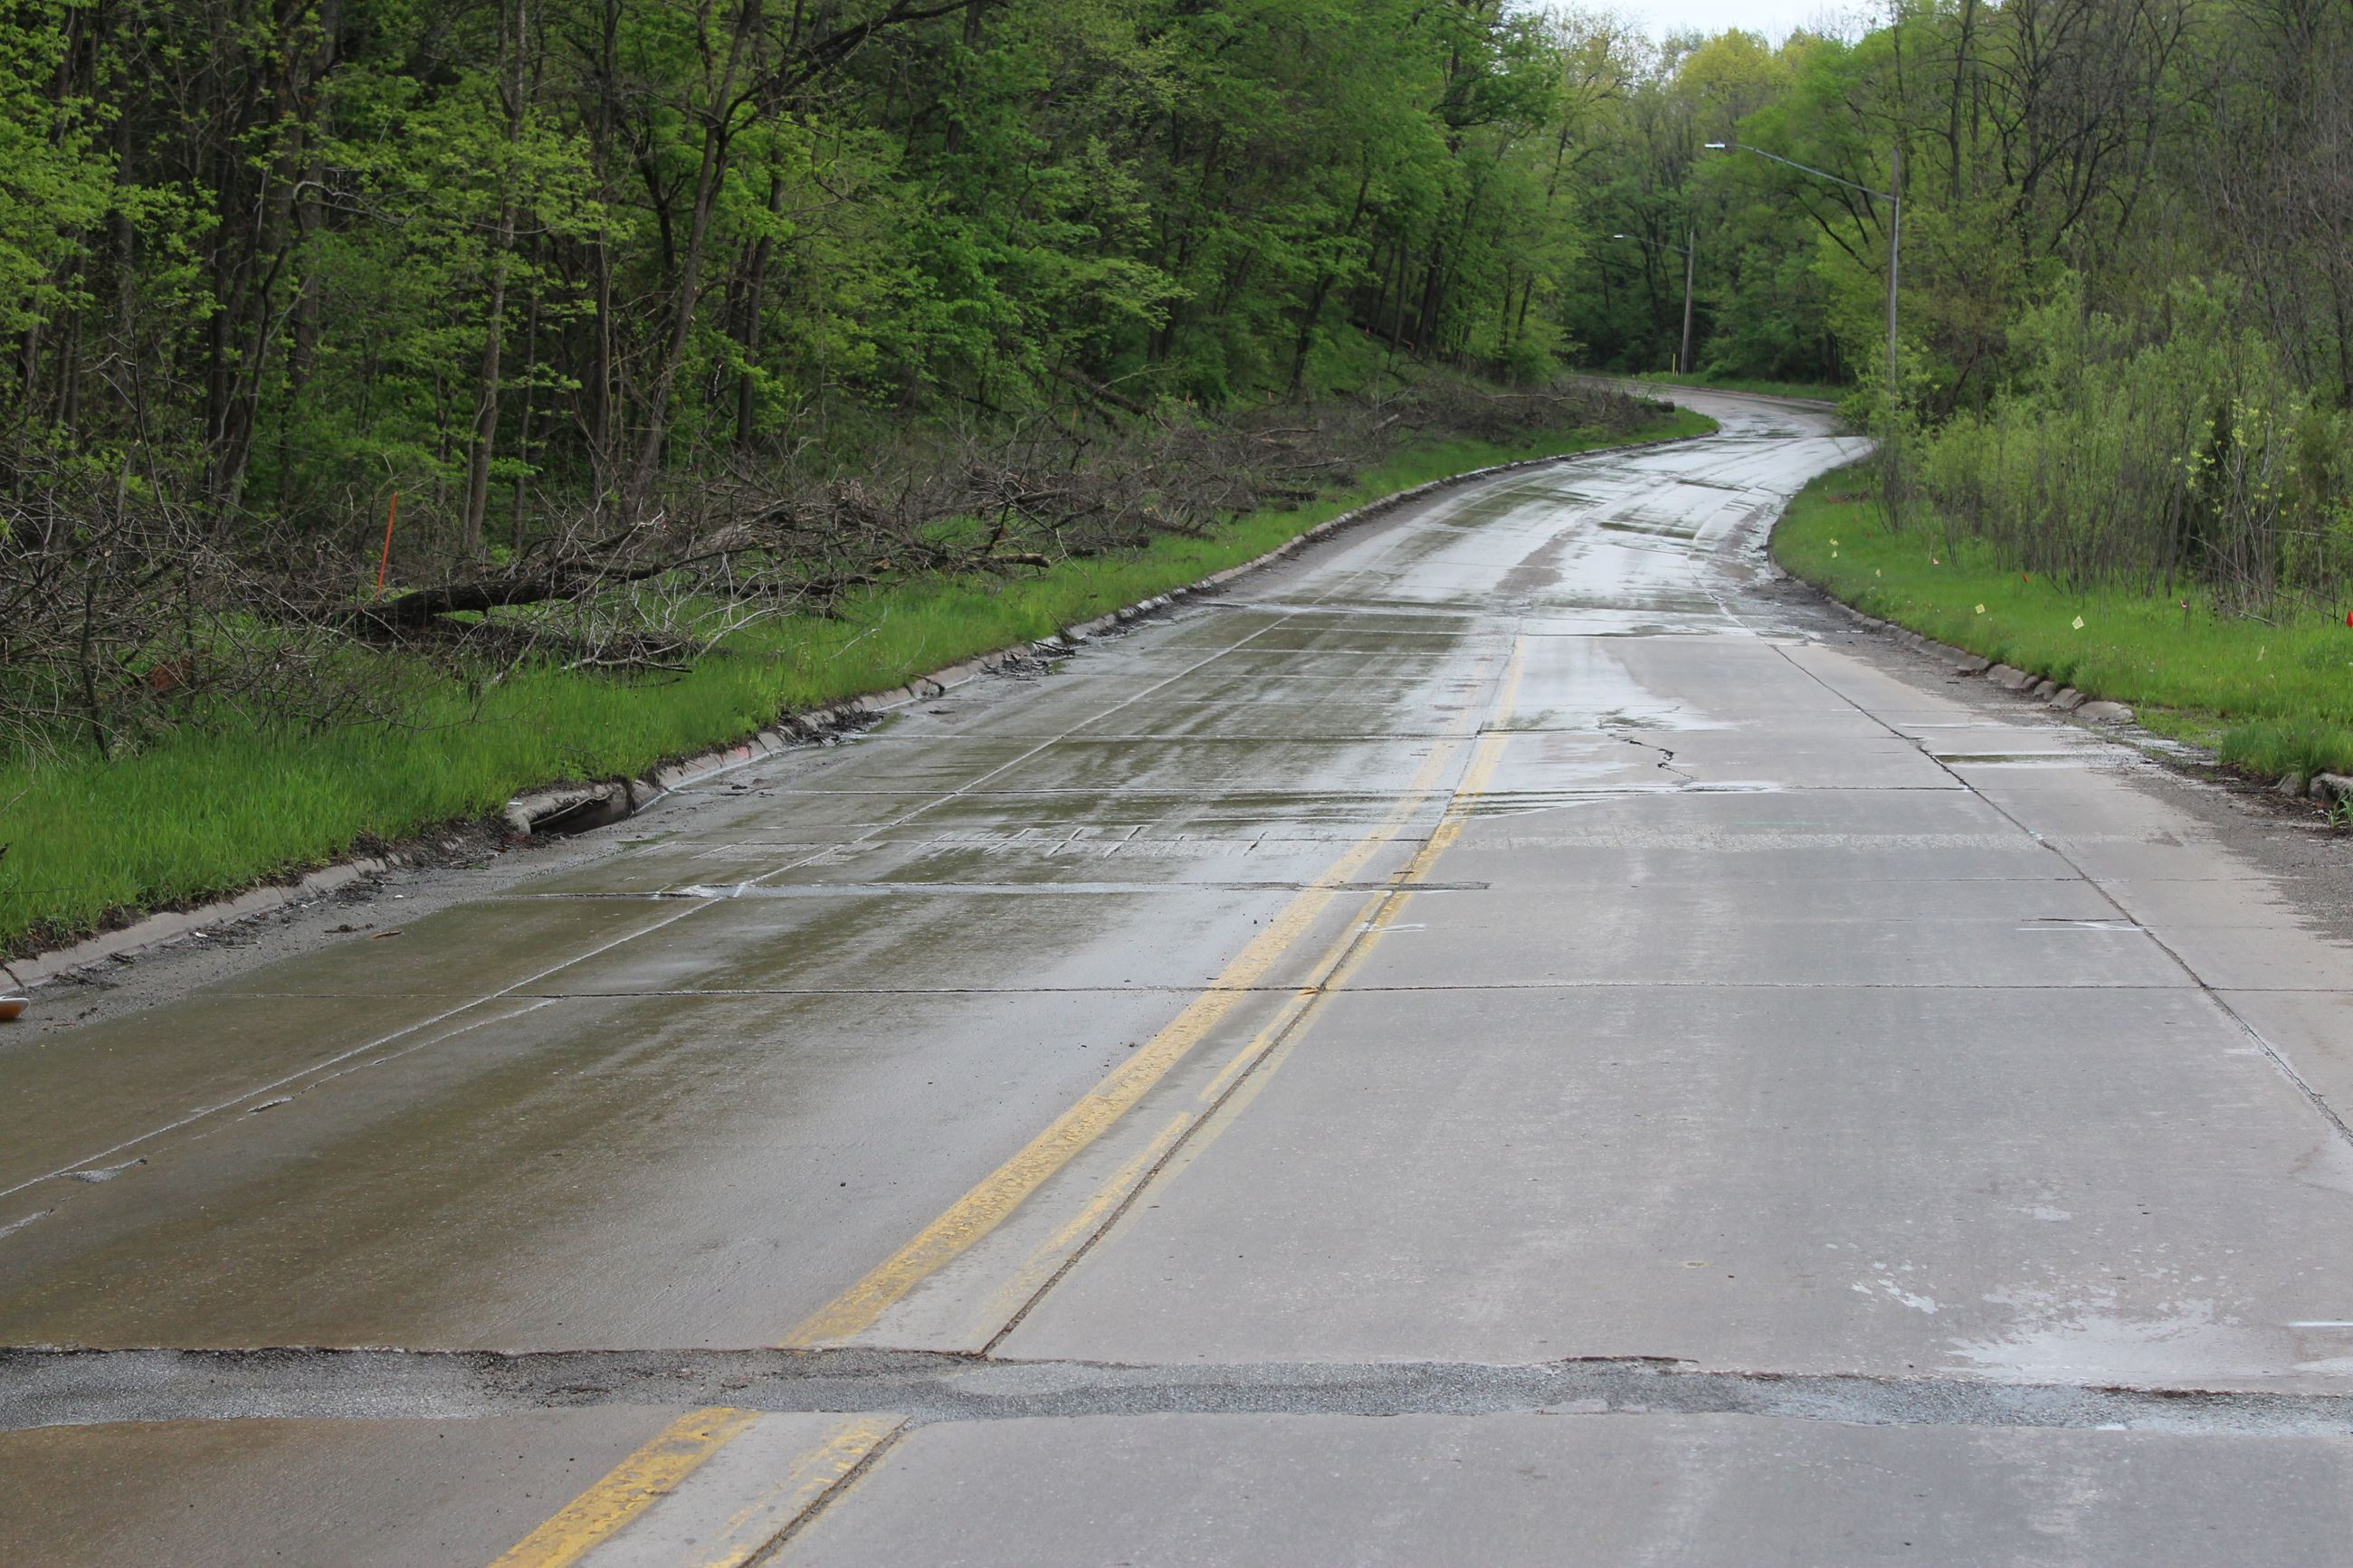 North Houser Street between Lucas and Hershey on May 8, 2019 (JPG)